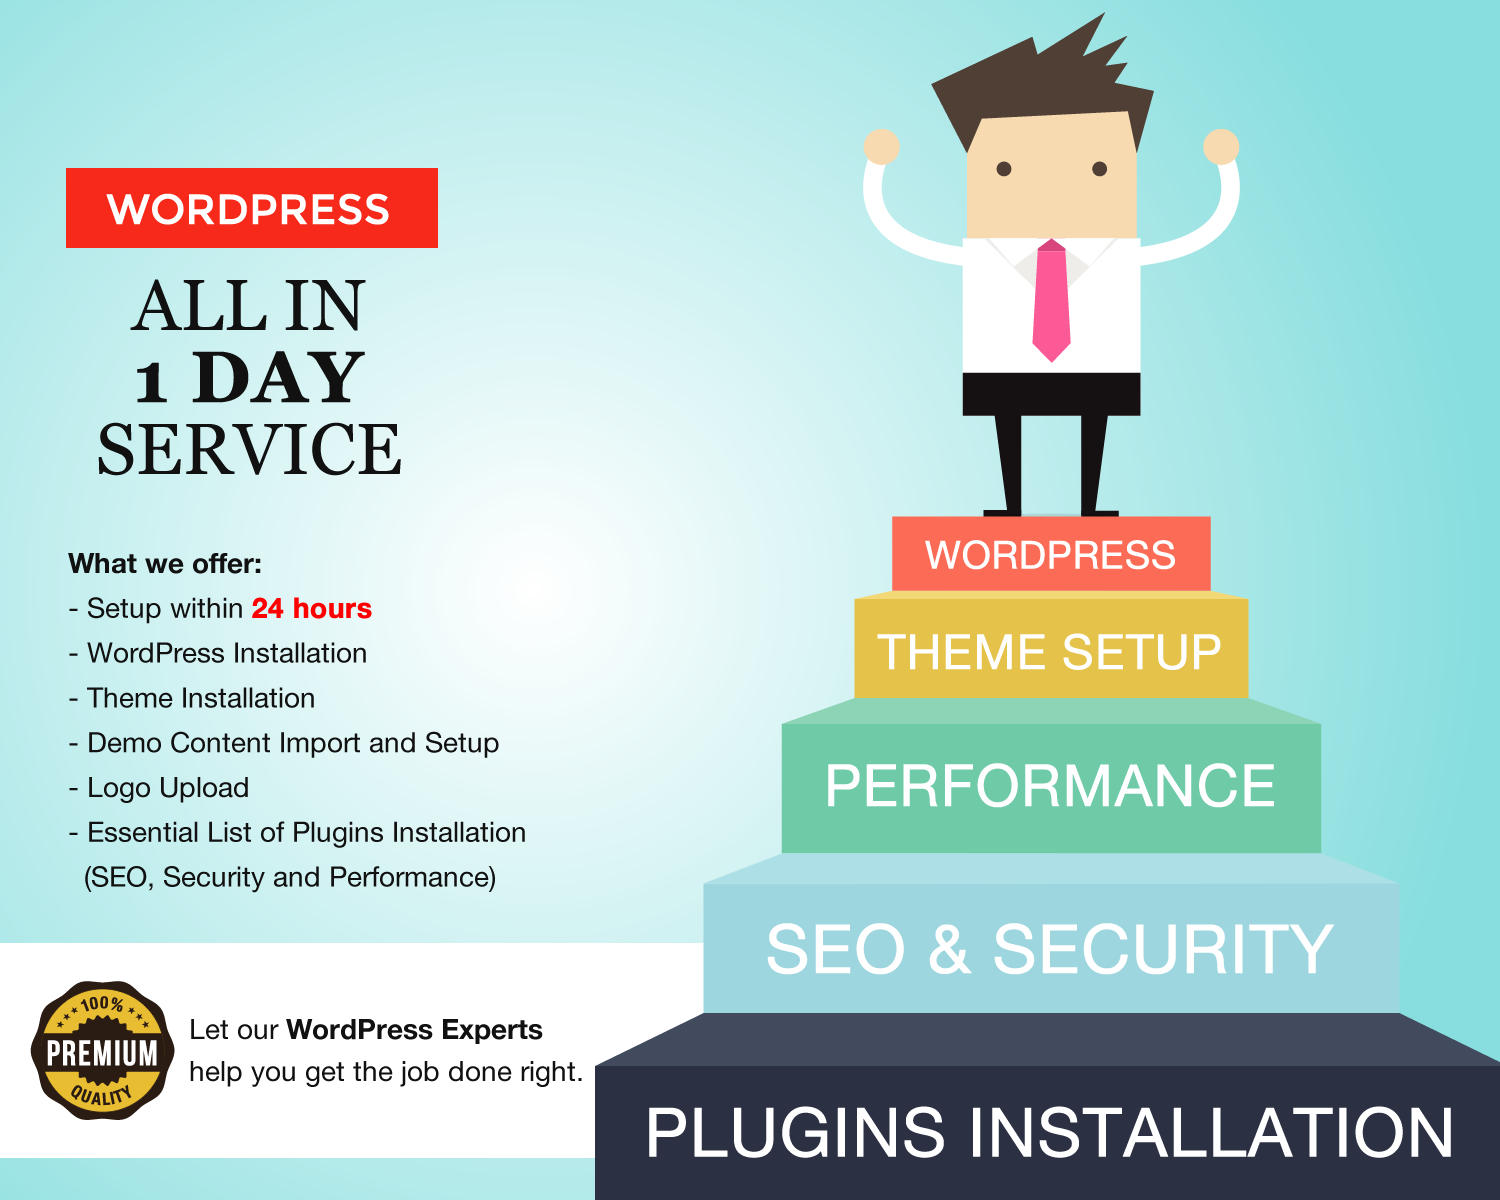 WordPress All-In Service - Theme Setup, SEO, Security, Performance and Plugins Installations by kentonwebdesign - 105106